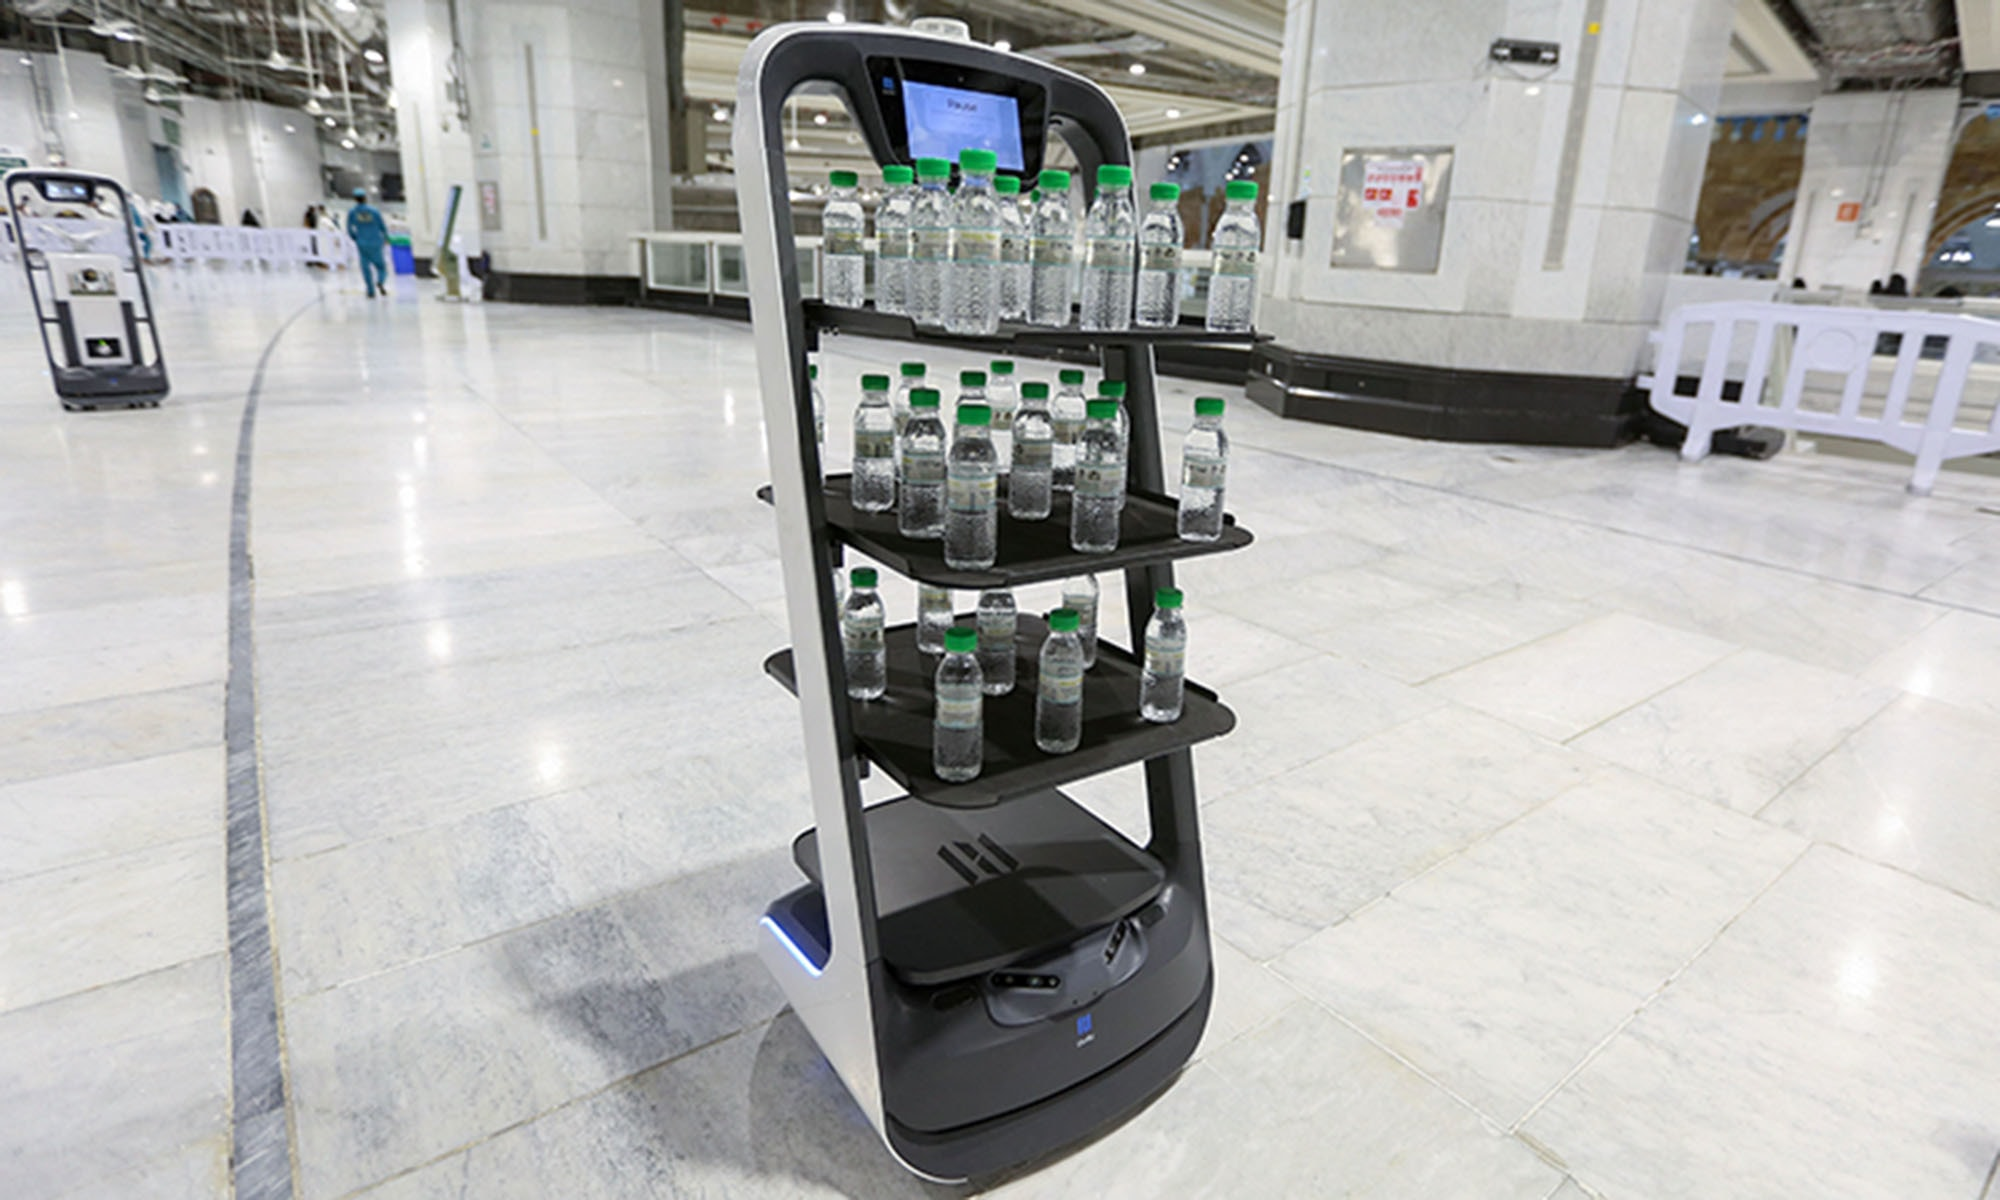 Picture shows a smart robot used for the first time at the Grand Mosque in Saudi Arabia's holy city of Mecca, supplying worshippers with bottles of Zamzam water to reduce direct contact with staff as a measure to prevent Covid-19 infections during the yearly Haj pilgrimage. — AFP/File